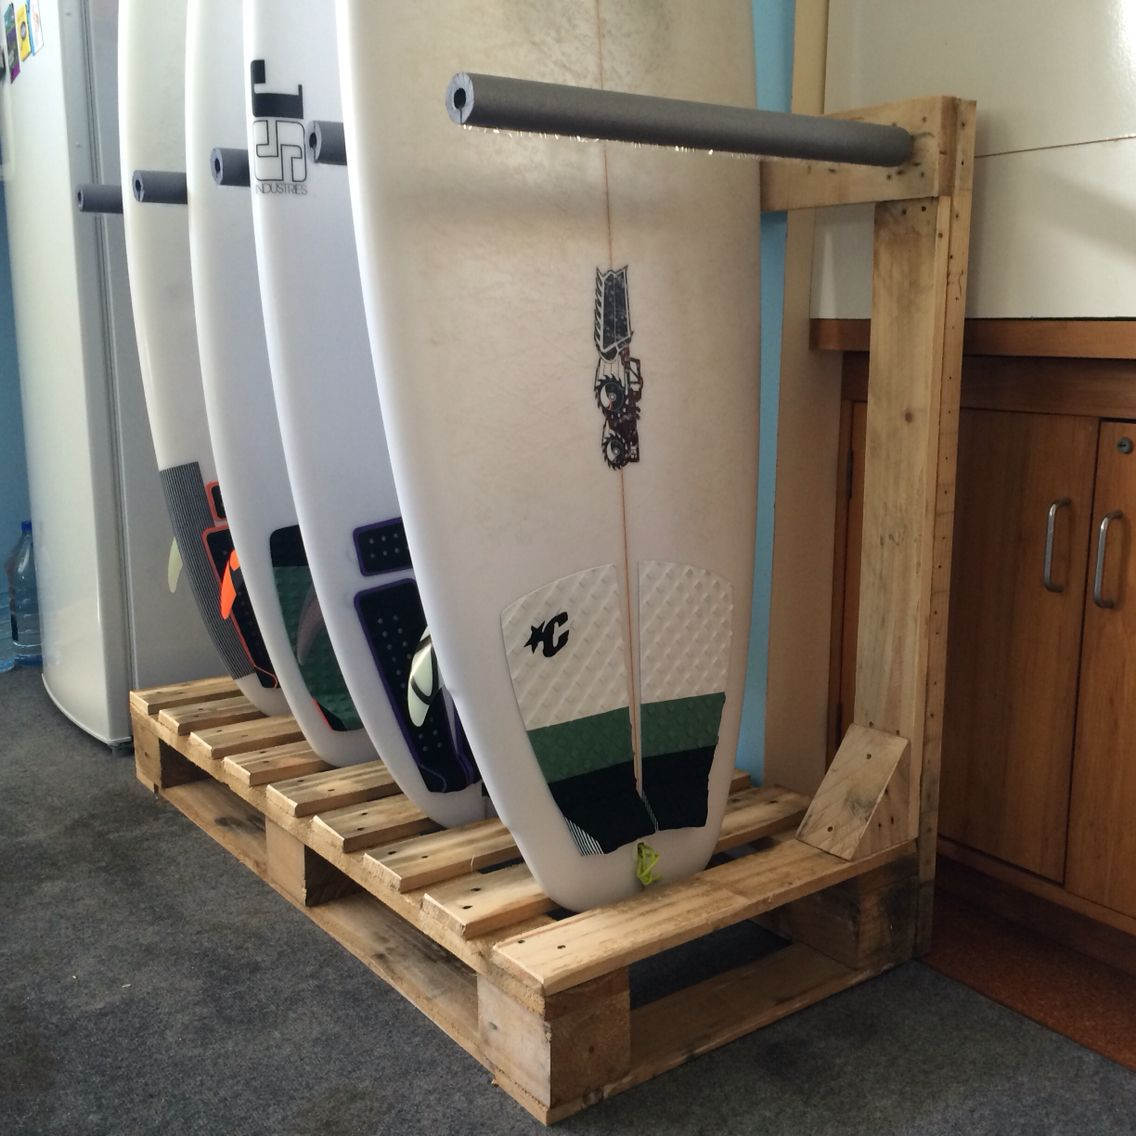 surfboard rack diy from old wooden pallets up cycled casas pinterest surf tabla y palets. Black Bedroom Furniture Sets. Home Design Ideas